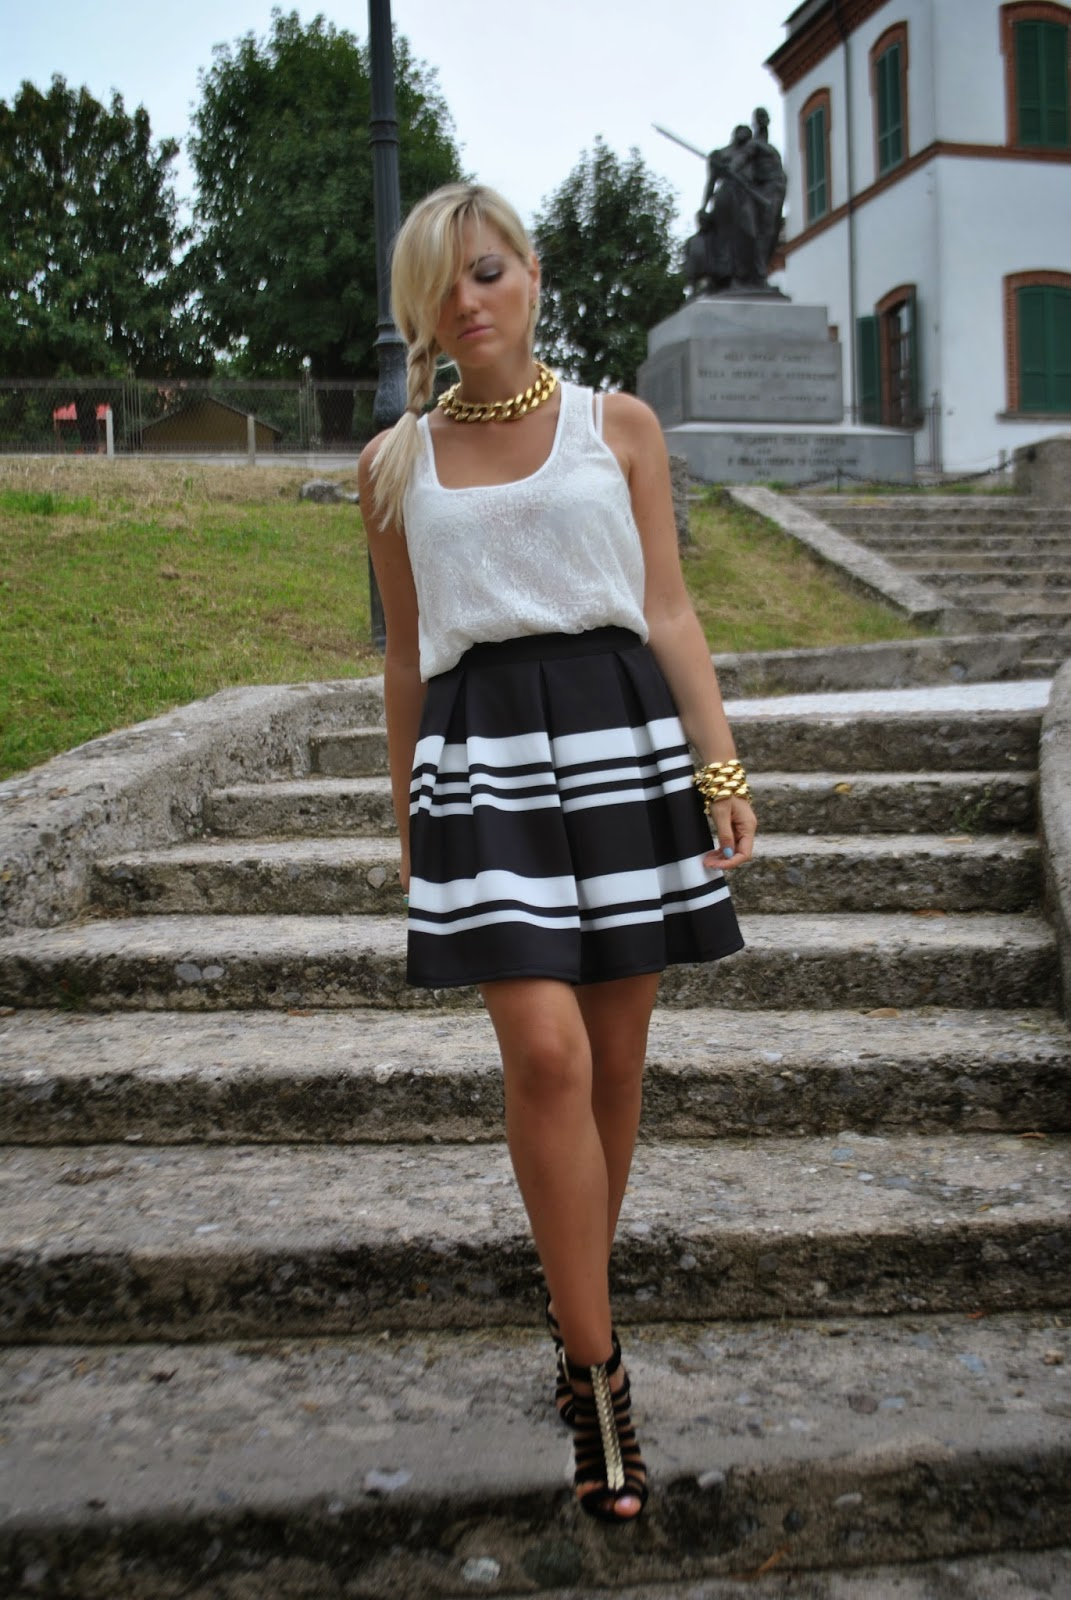 outfit canotta in pizzo pimkie outfit gonna a ruota in neoprene pimkie outfit bianco e nero outfit gonna a righe outfit gonna nera e bianca abbinamento bianco e nero gonna in neoprene bianca e nera abbinamenti gonna a ruota come abbinare la gonna a  ruota how to wear round skirt outfit round skirt lace top tank street style september 2014 street style lookbook september 2014 lookbook settembre 2014 street style settembre 2014 outfit settembre 2014 outfit estivi outfit estate 2014 outfit estivi ragazze outfit gonna e tacchi outfit estivi gonna e tacchi fashion blogger italiane fashion blogger bionde treccia di lato acconciatura treccia laterale gioielli majique majique jewels anello majique majique ring anello ysl anello copia ysl di majique outfit di mariafelicia magno fashion blogger di colorblock by felym mariafelicia magno fashion blogger italiane fashion blogger milano scarpe schutz schutz sandals pimkie schutz canotta in pizzo canotta in pizzo bianco collana a catena dorata